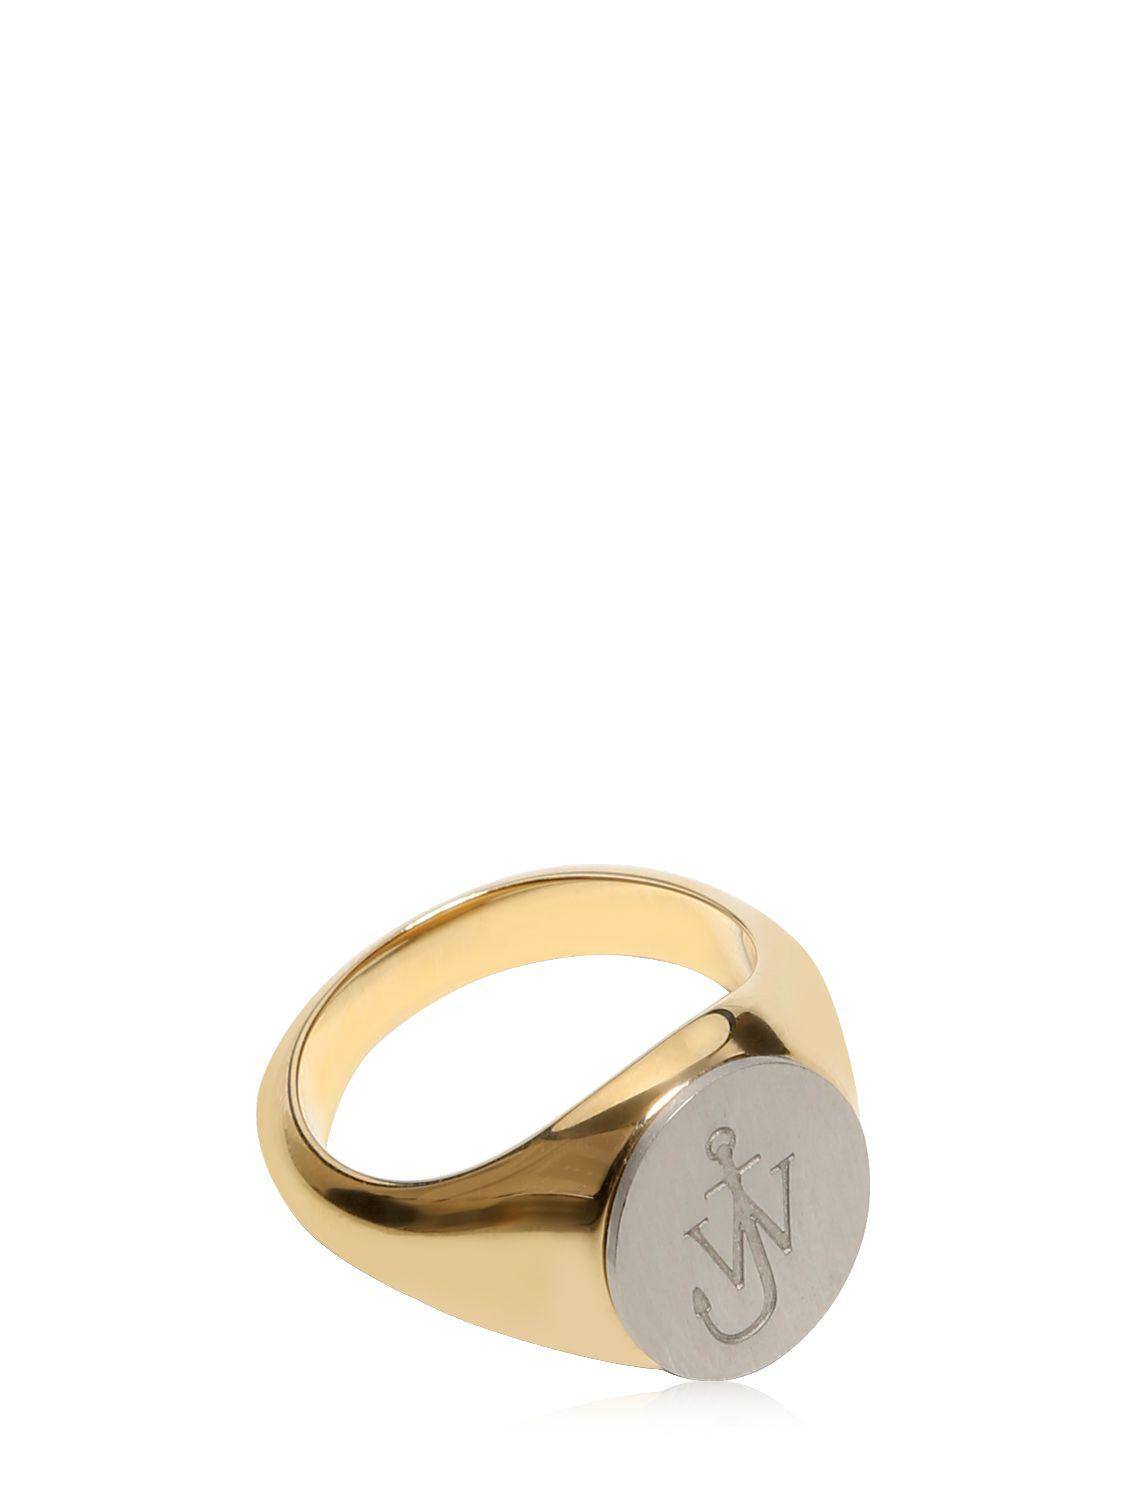 JW Anderson Logo Ring in Gold (Metallic)